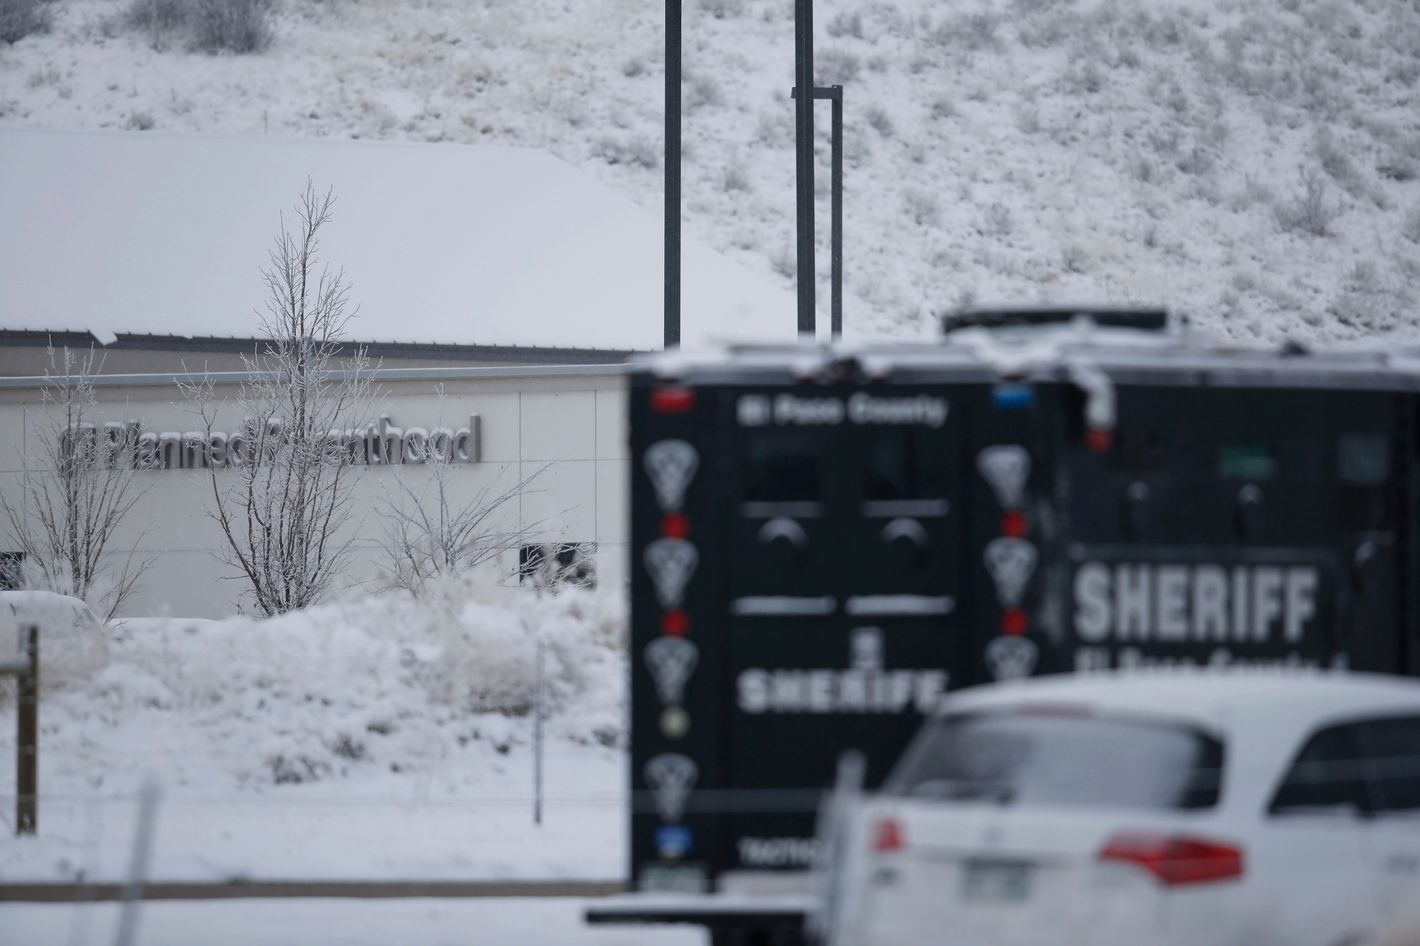 What We Know About the Planned Parenthood Shooting